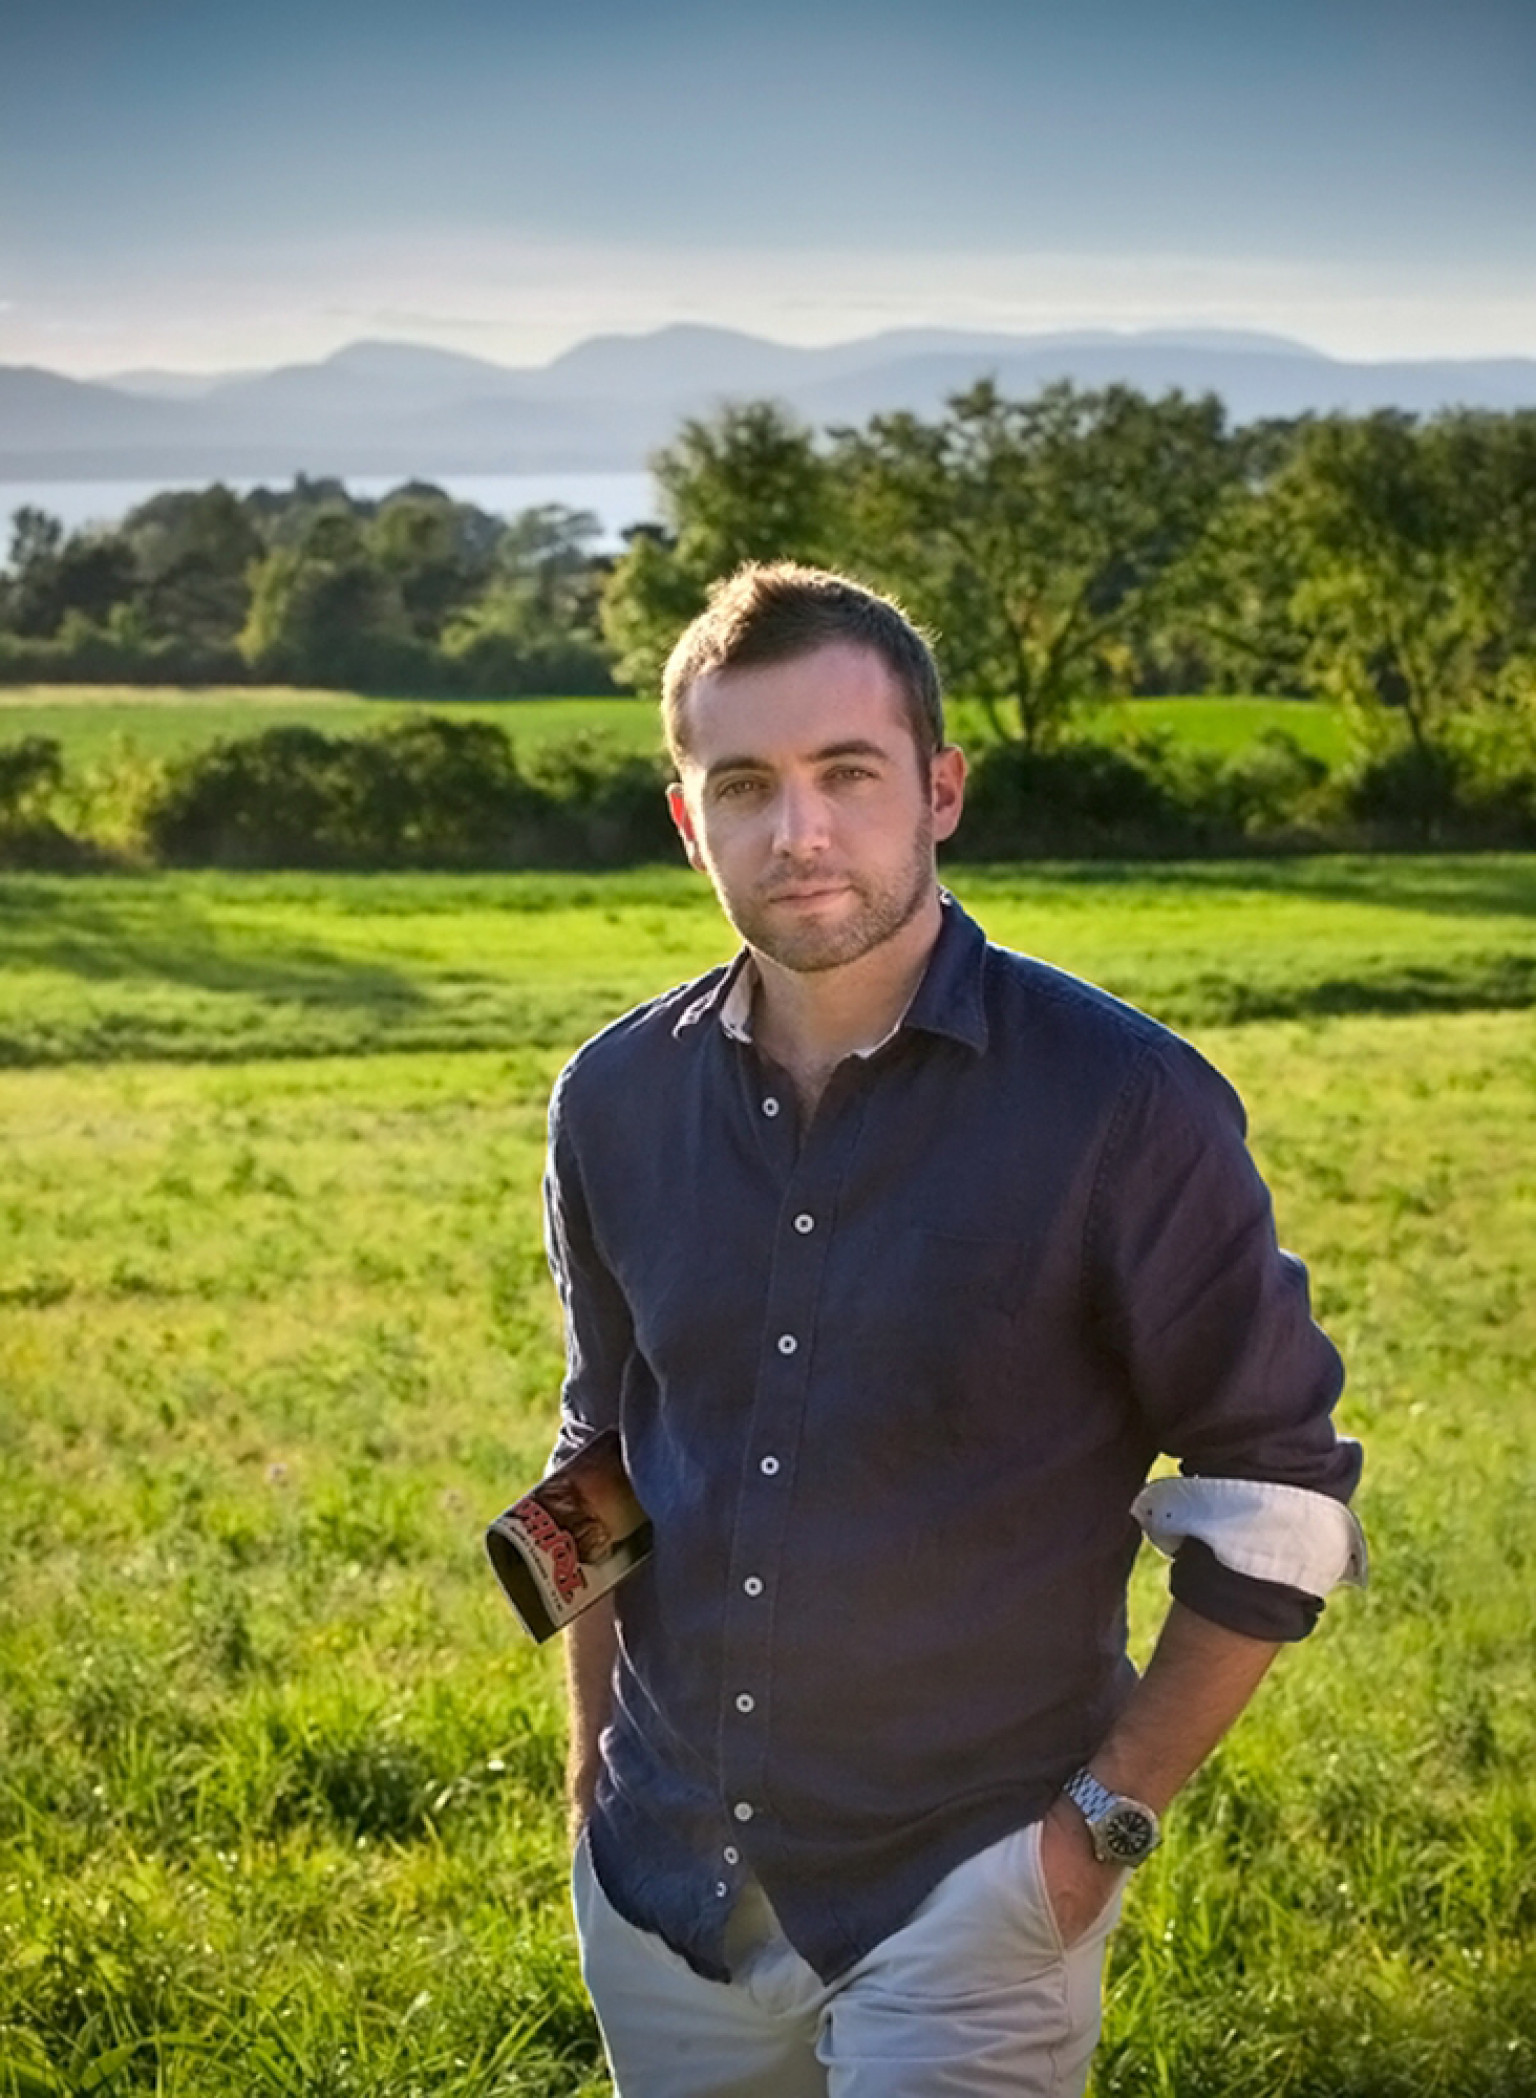 Michael Hastings Sent Worried Email Hours Before Death